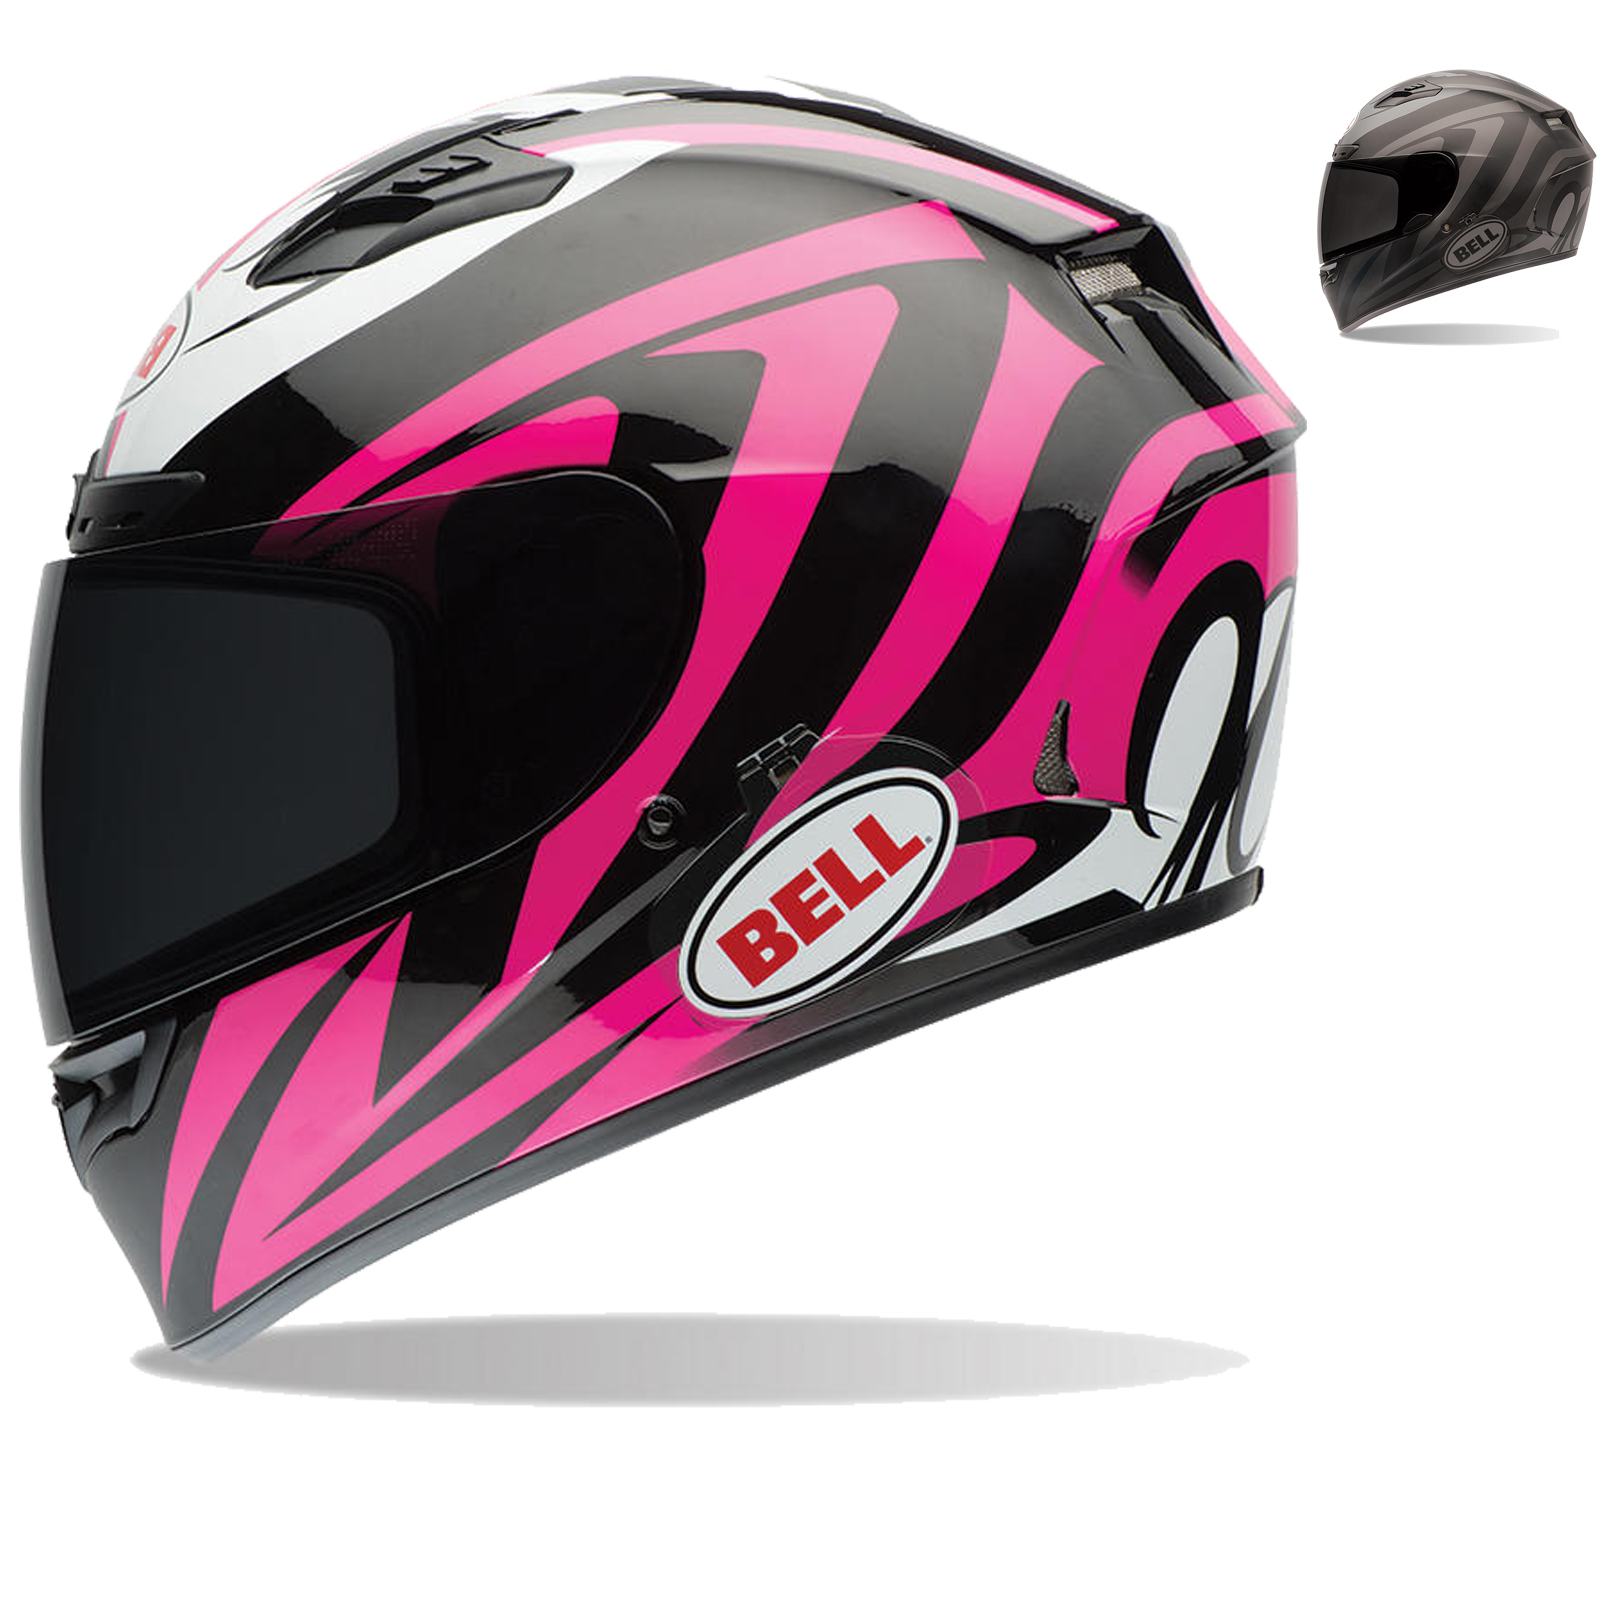 Bell Qualifier DLX Impulse Motorcycle Helmet La s Helmets